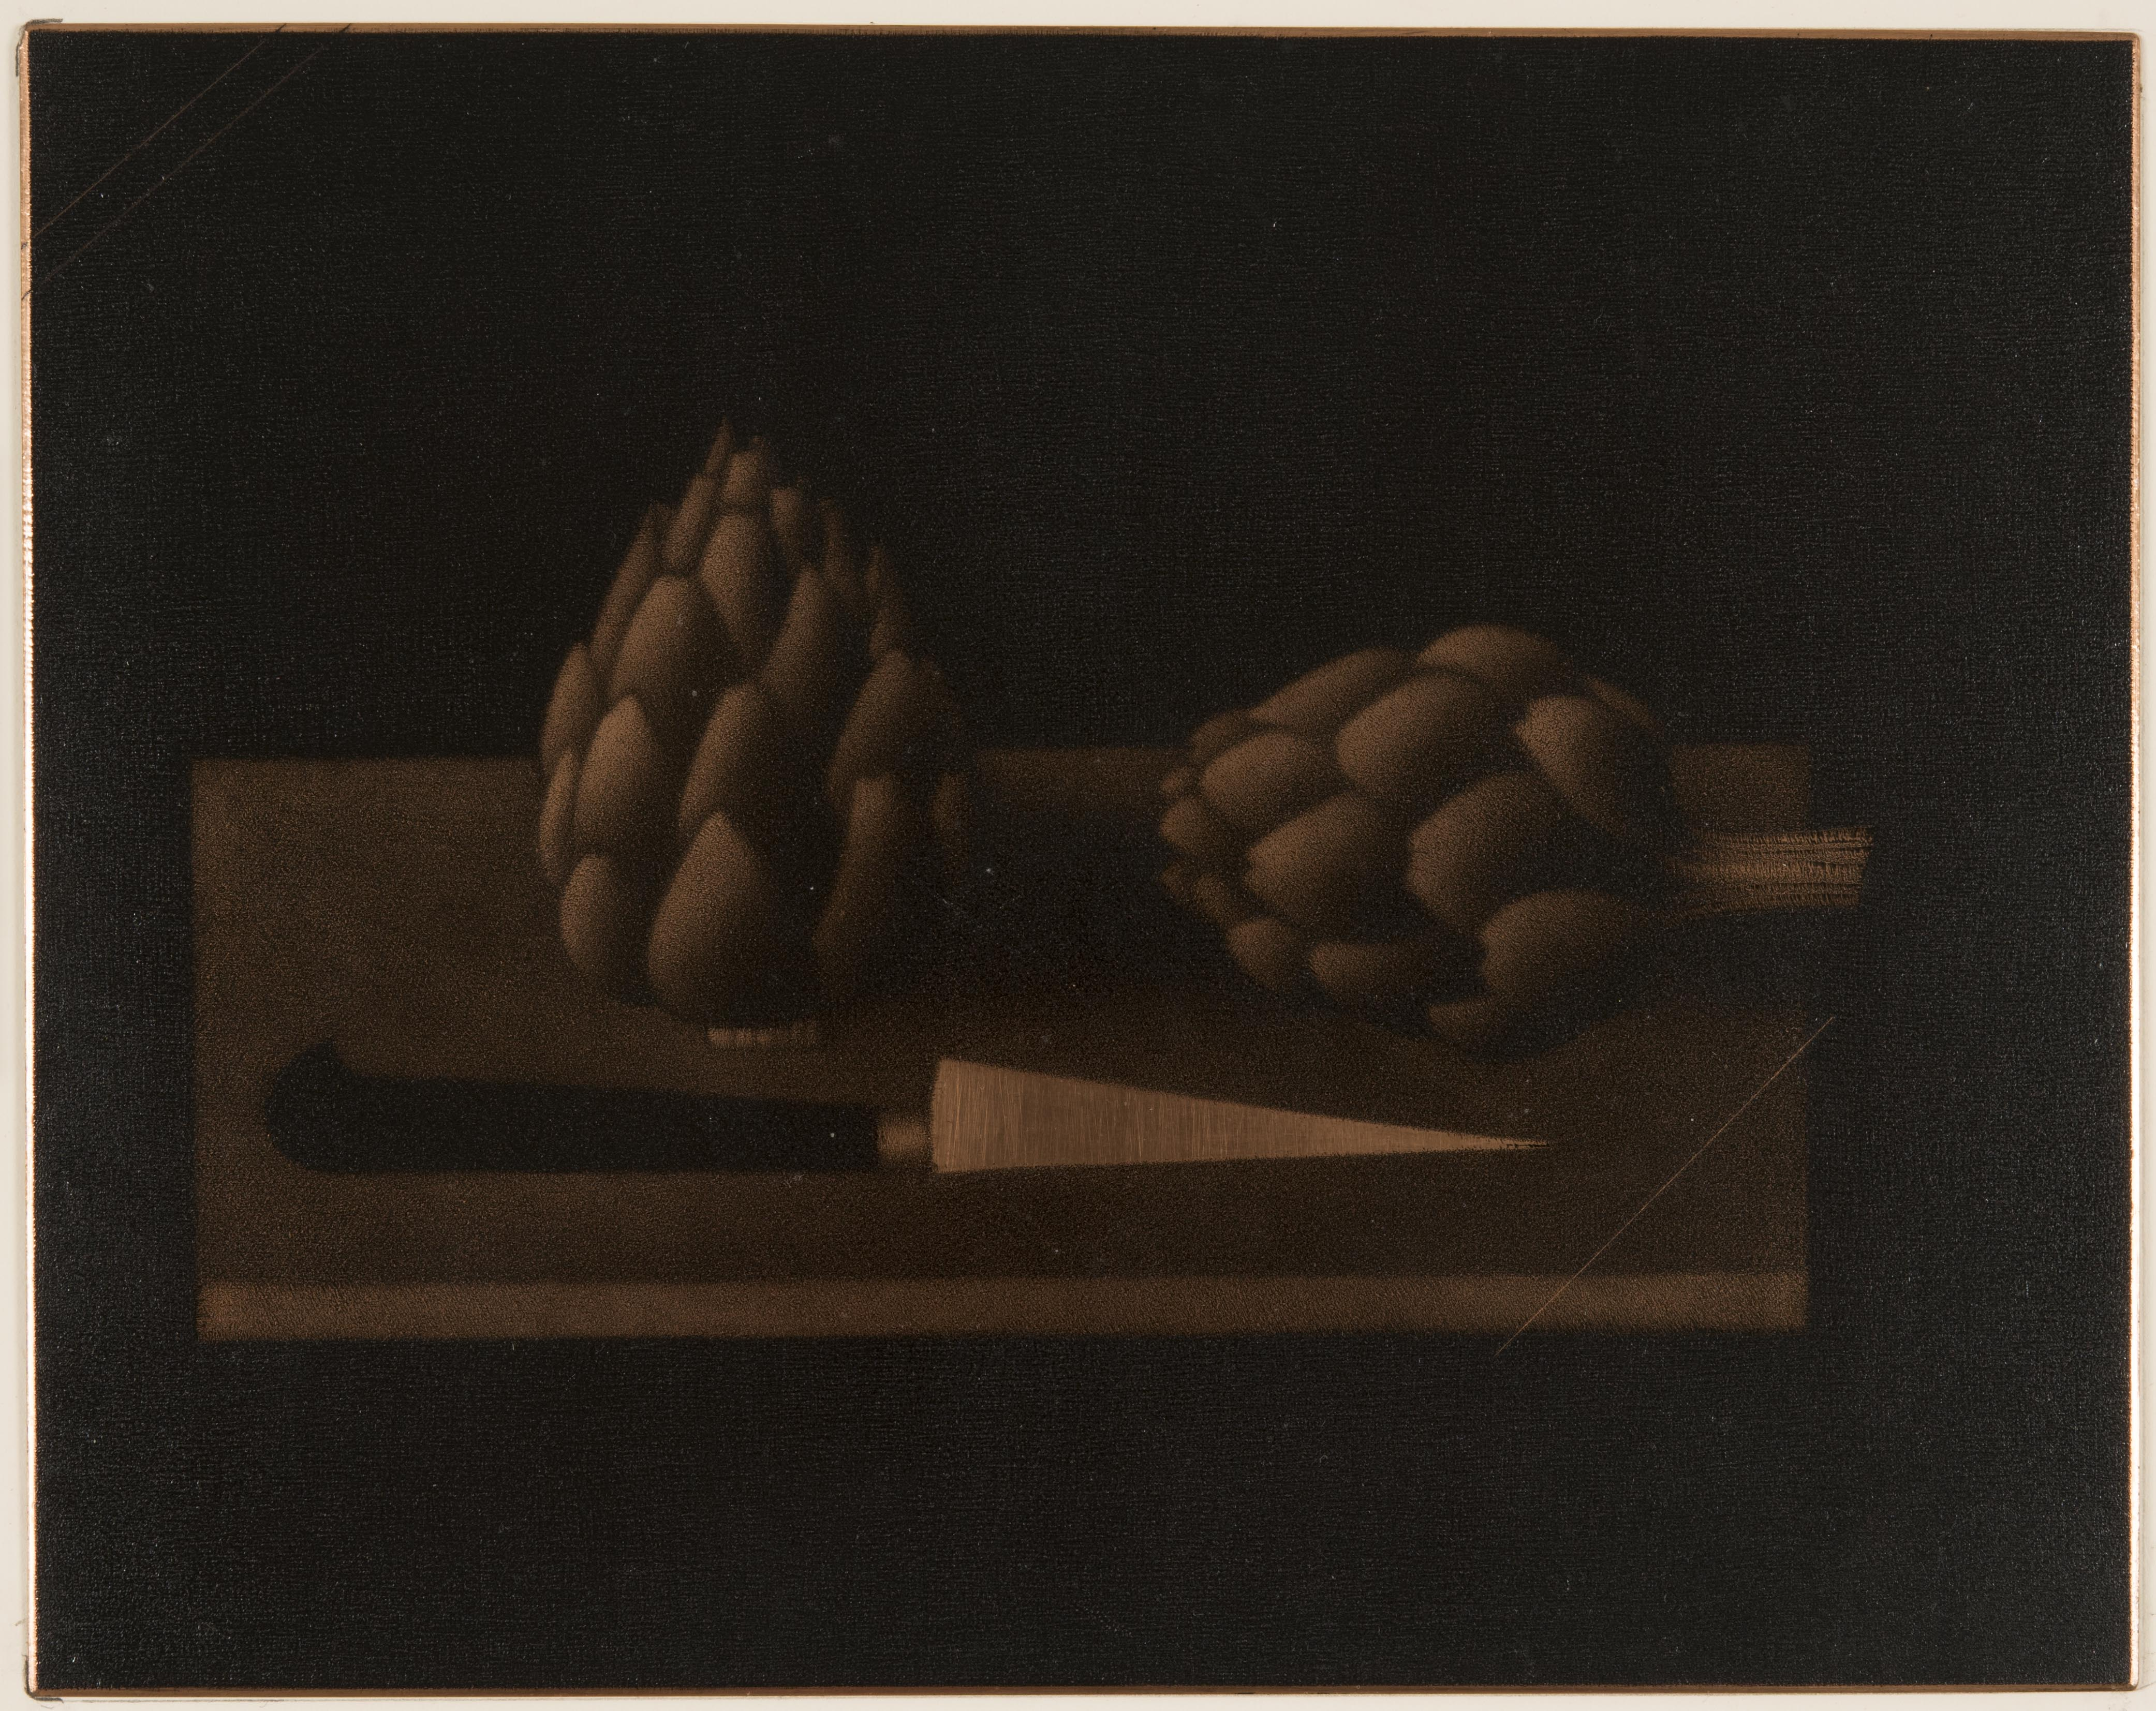 Mario Avati, Still Life with Artichokes, 1959